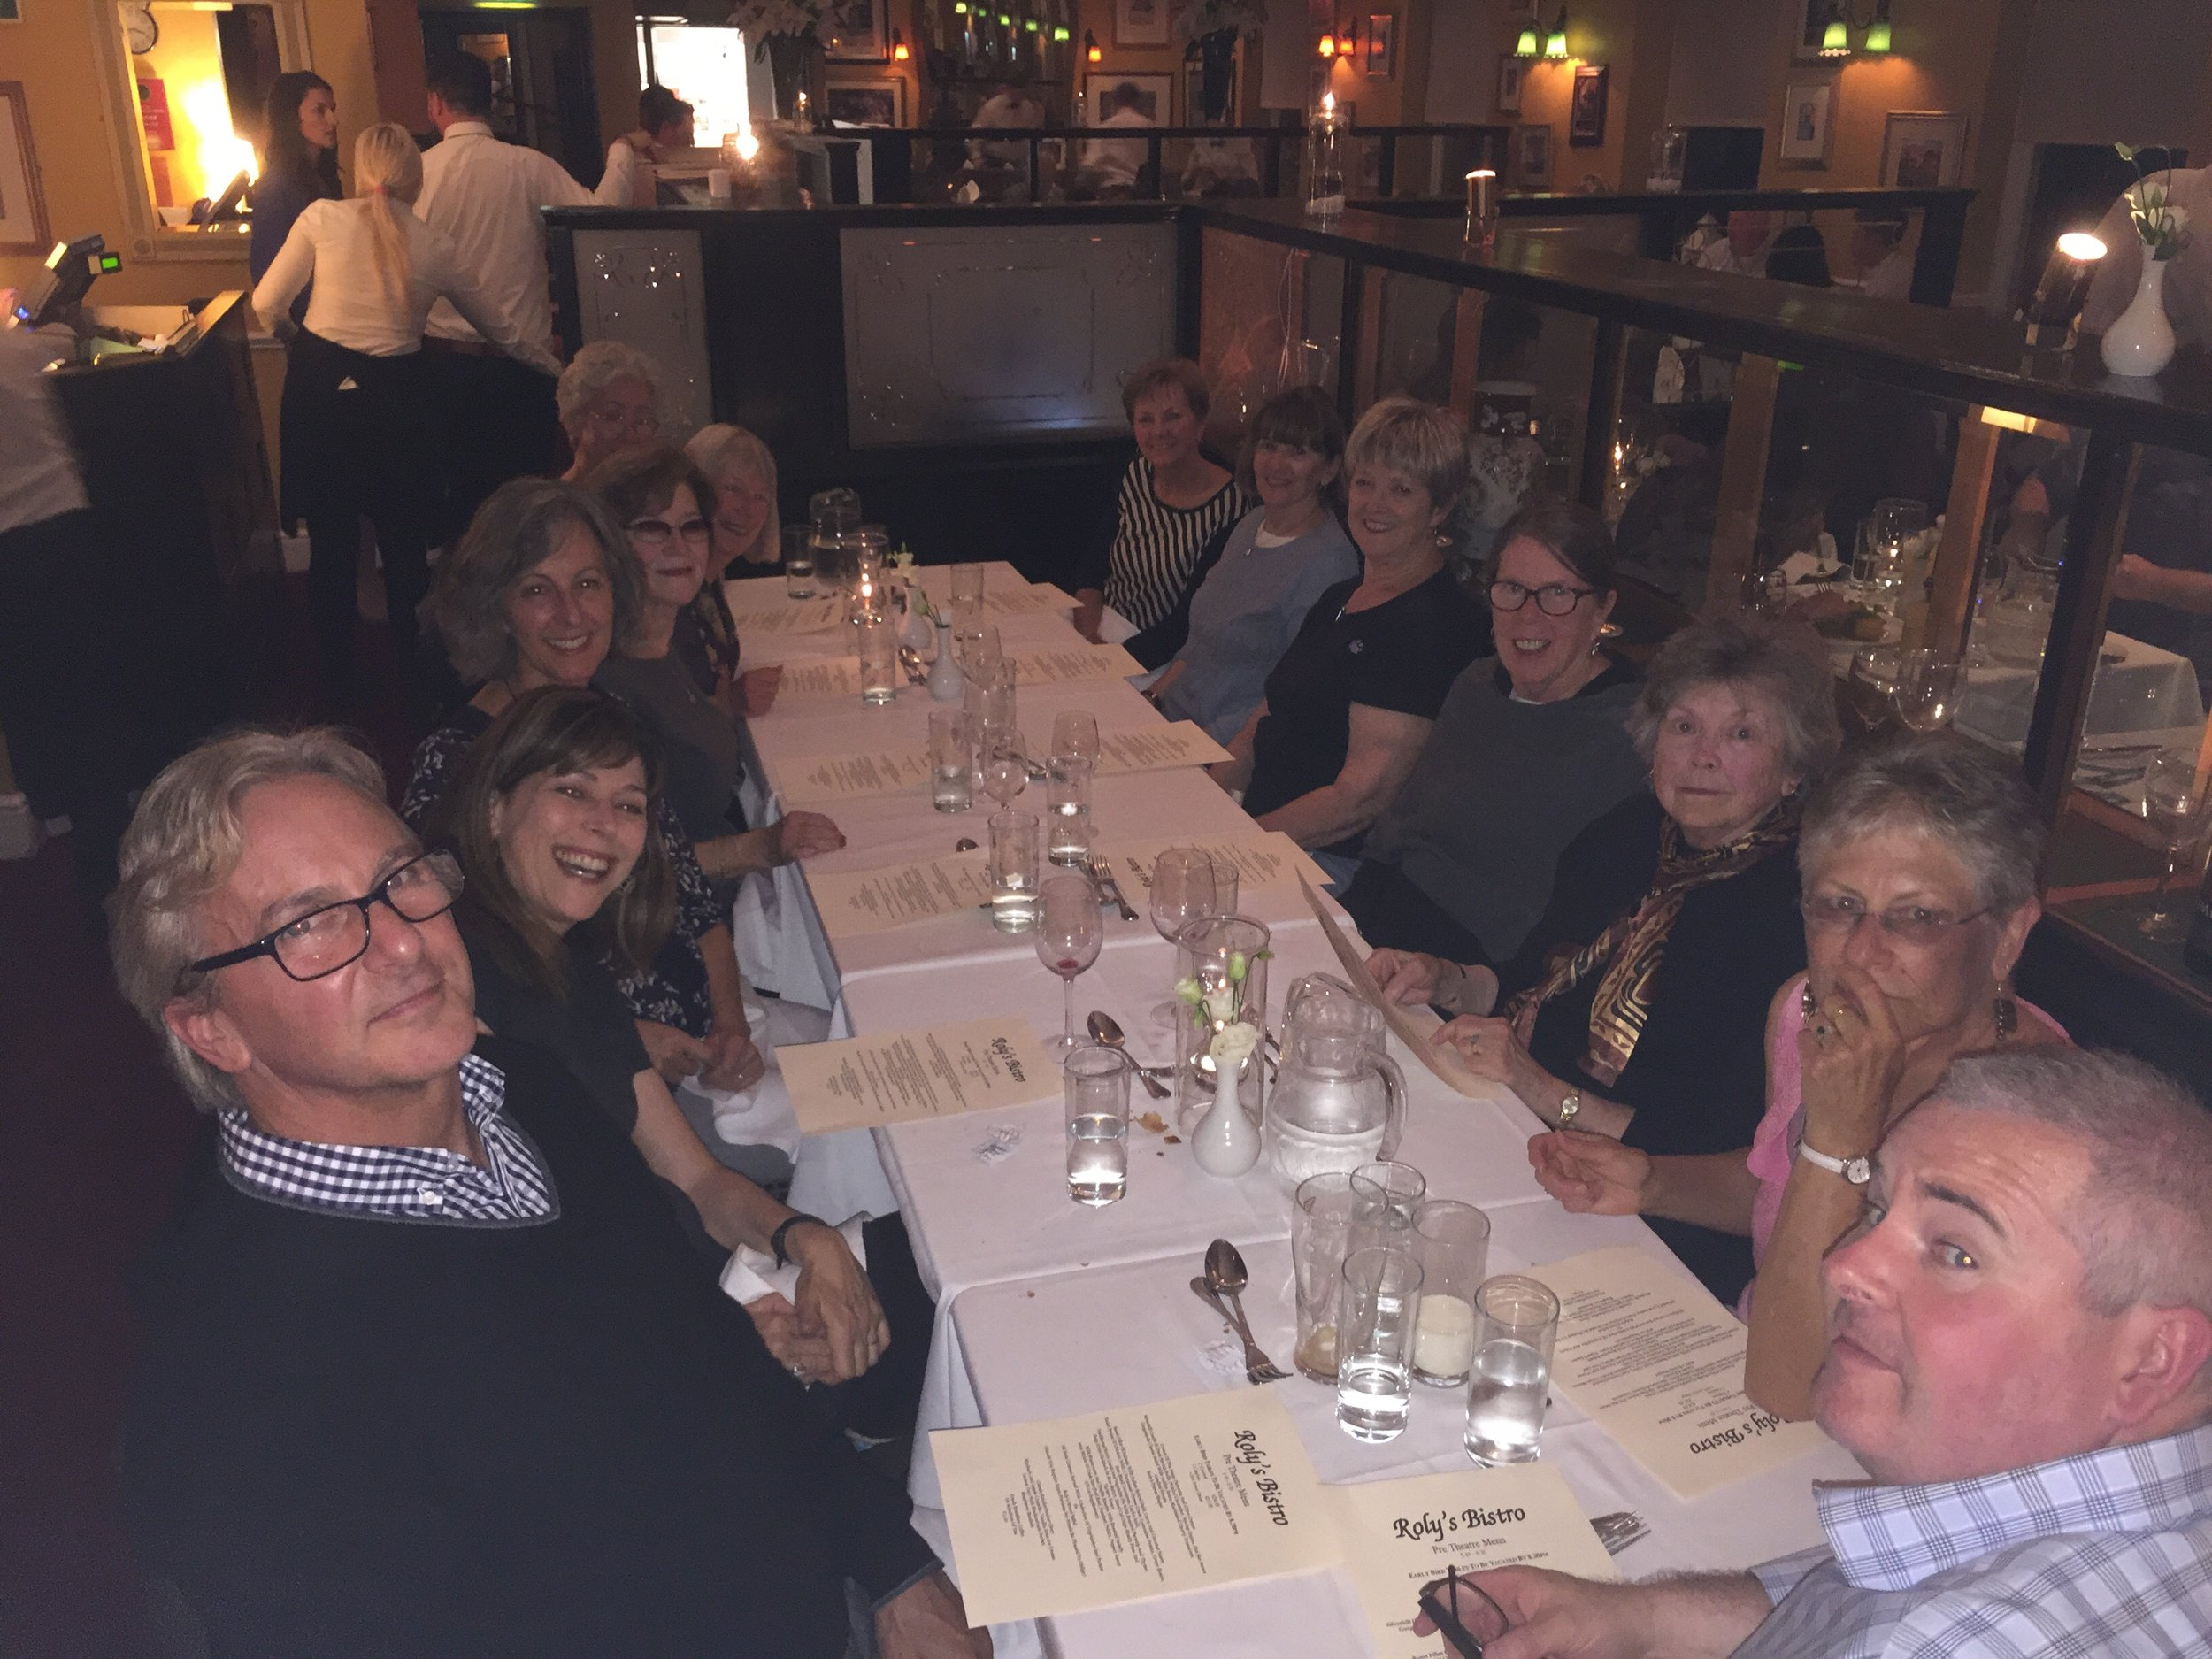 Everyone enjoying the dinner. On the right is Owen Flynn, our knowledgable driver and guide. He made the history of Ireland come to life for us.